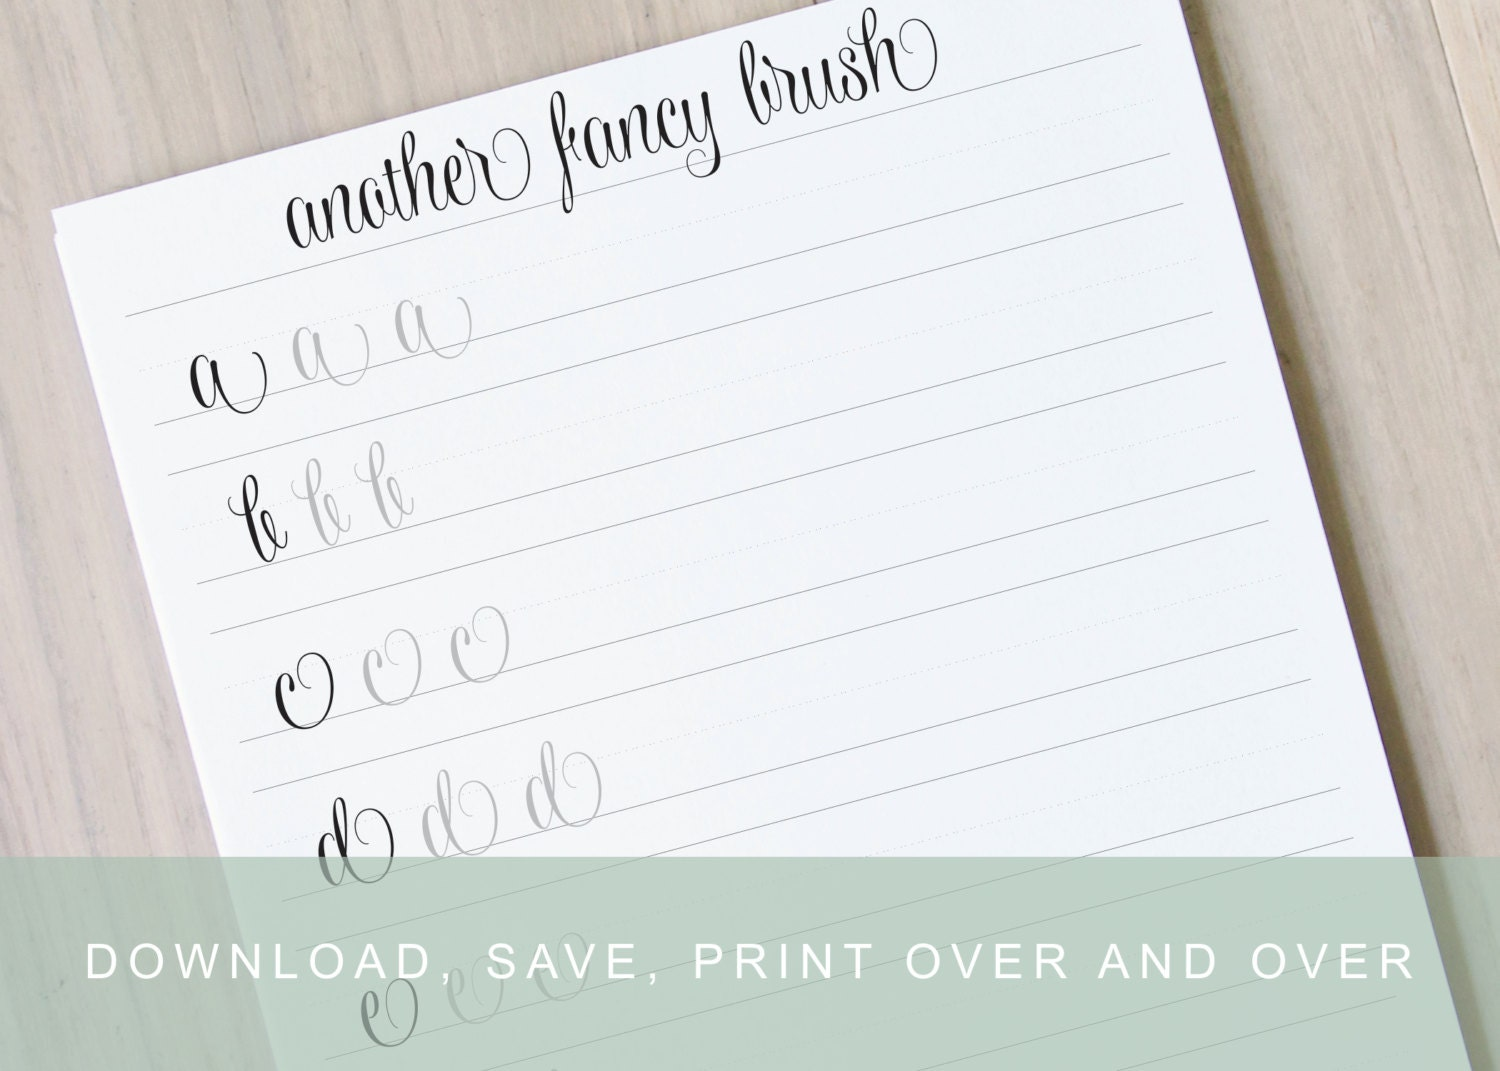 Another Fancy Lower Case Brush Lettering Worksheets